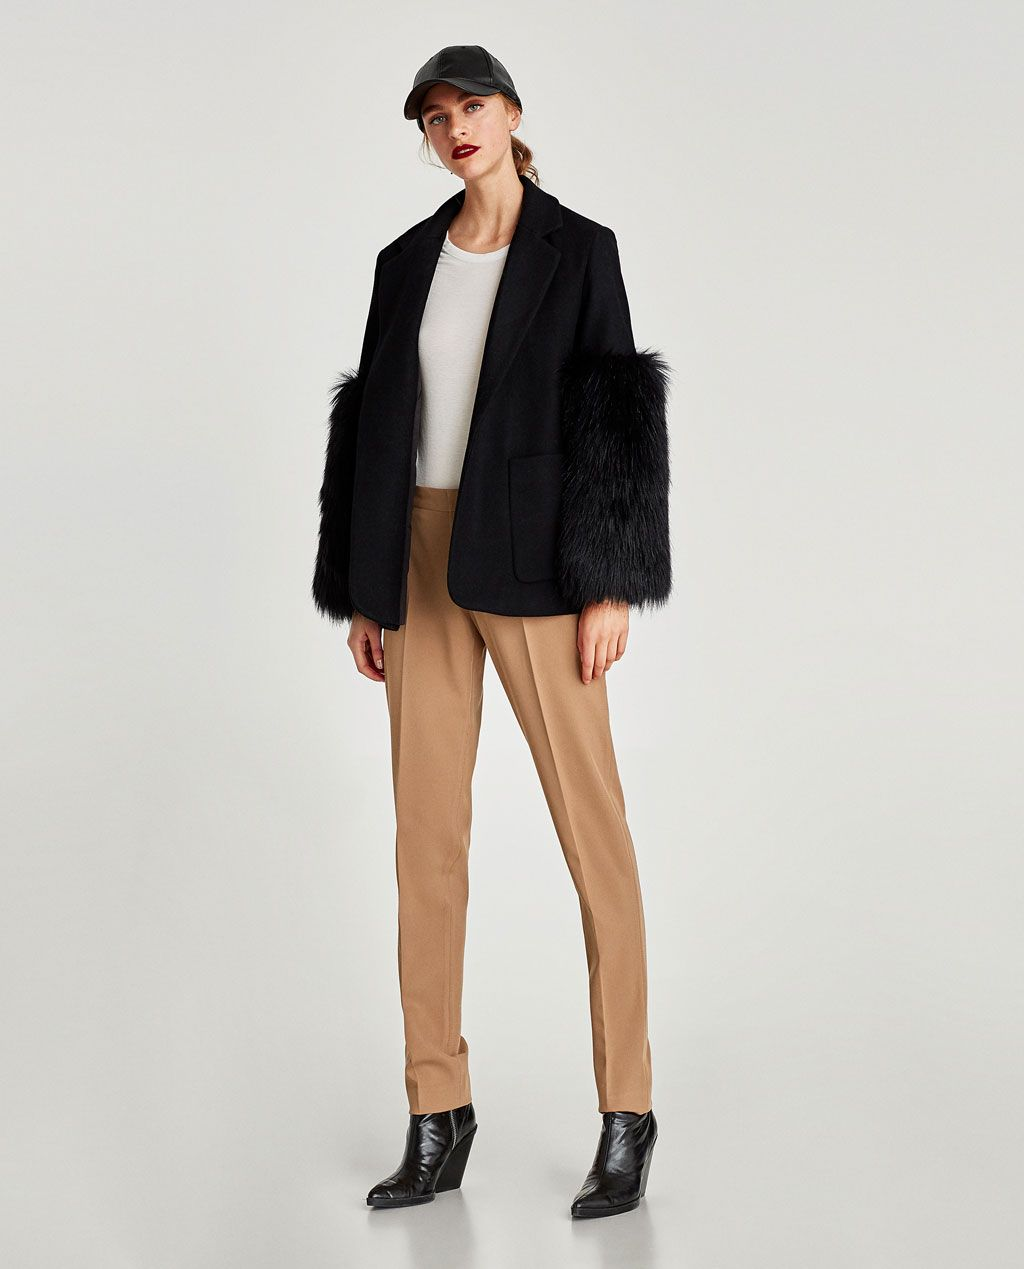 260003ec6db0 CONTRASTING FAUX FUR BLAZER-ICONIC BLAZERS-WOMAN-EDITORIALS | ZARA Hong  Kong S.A.R. of China